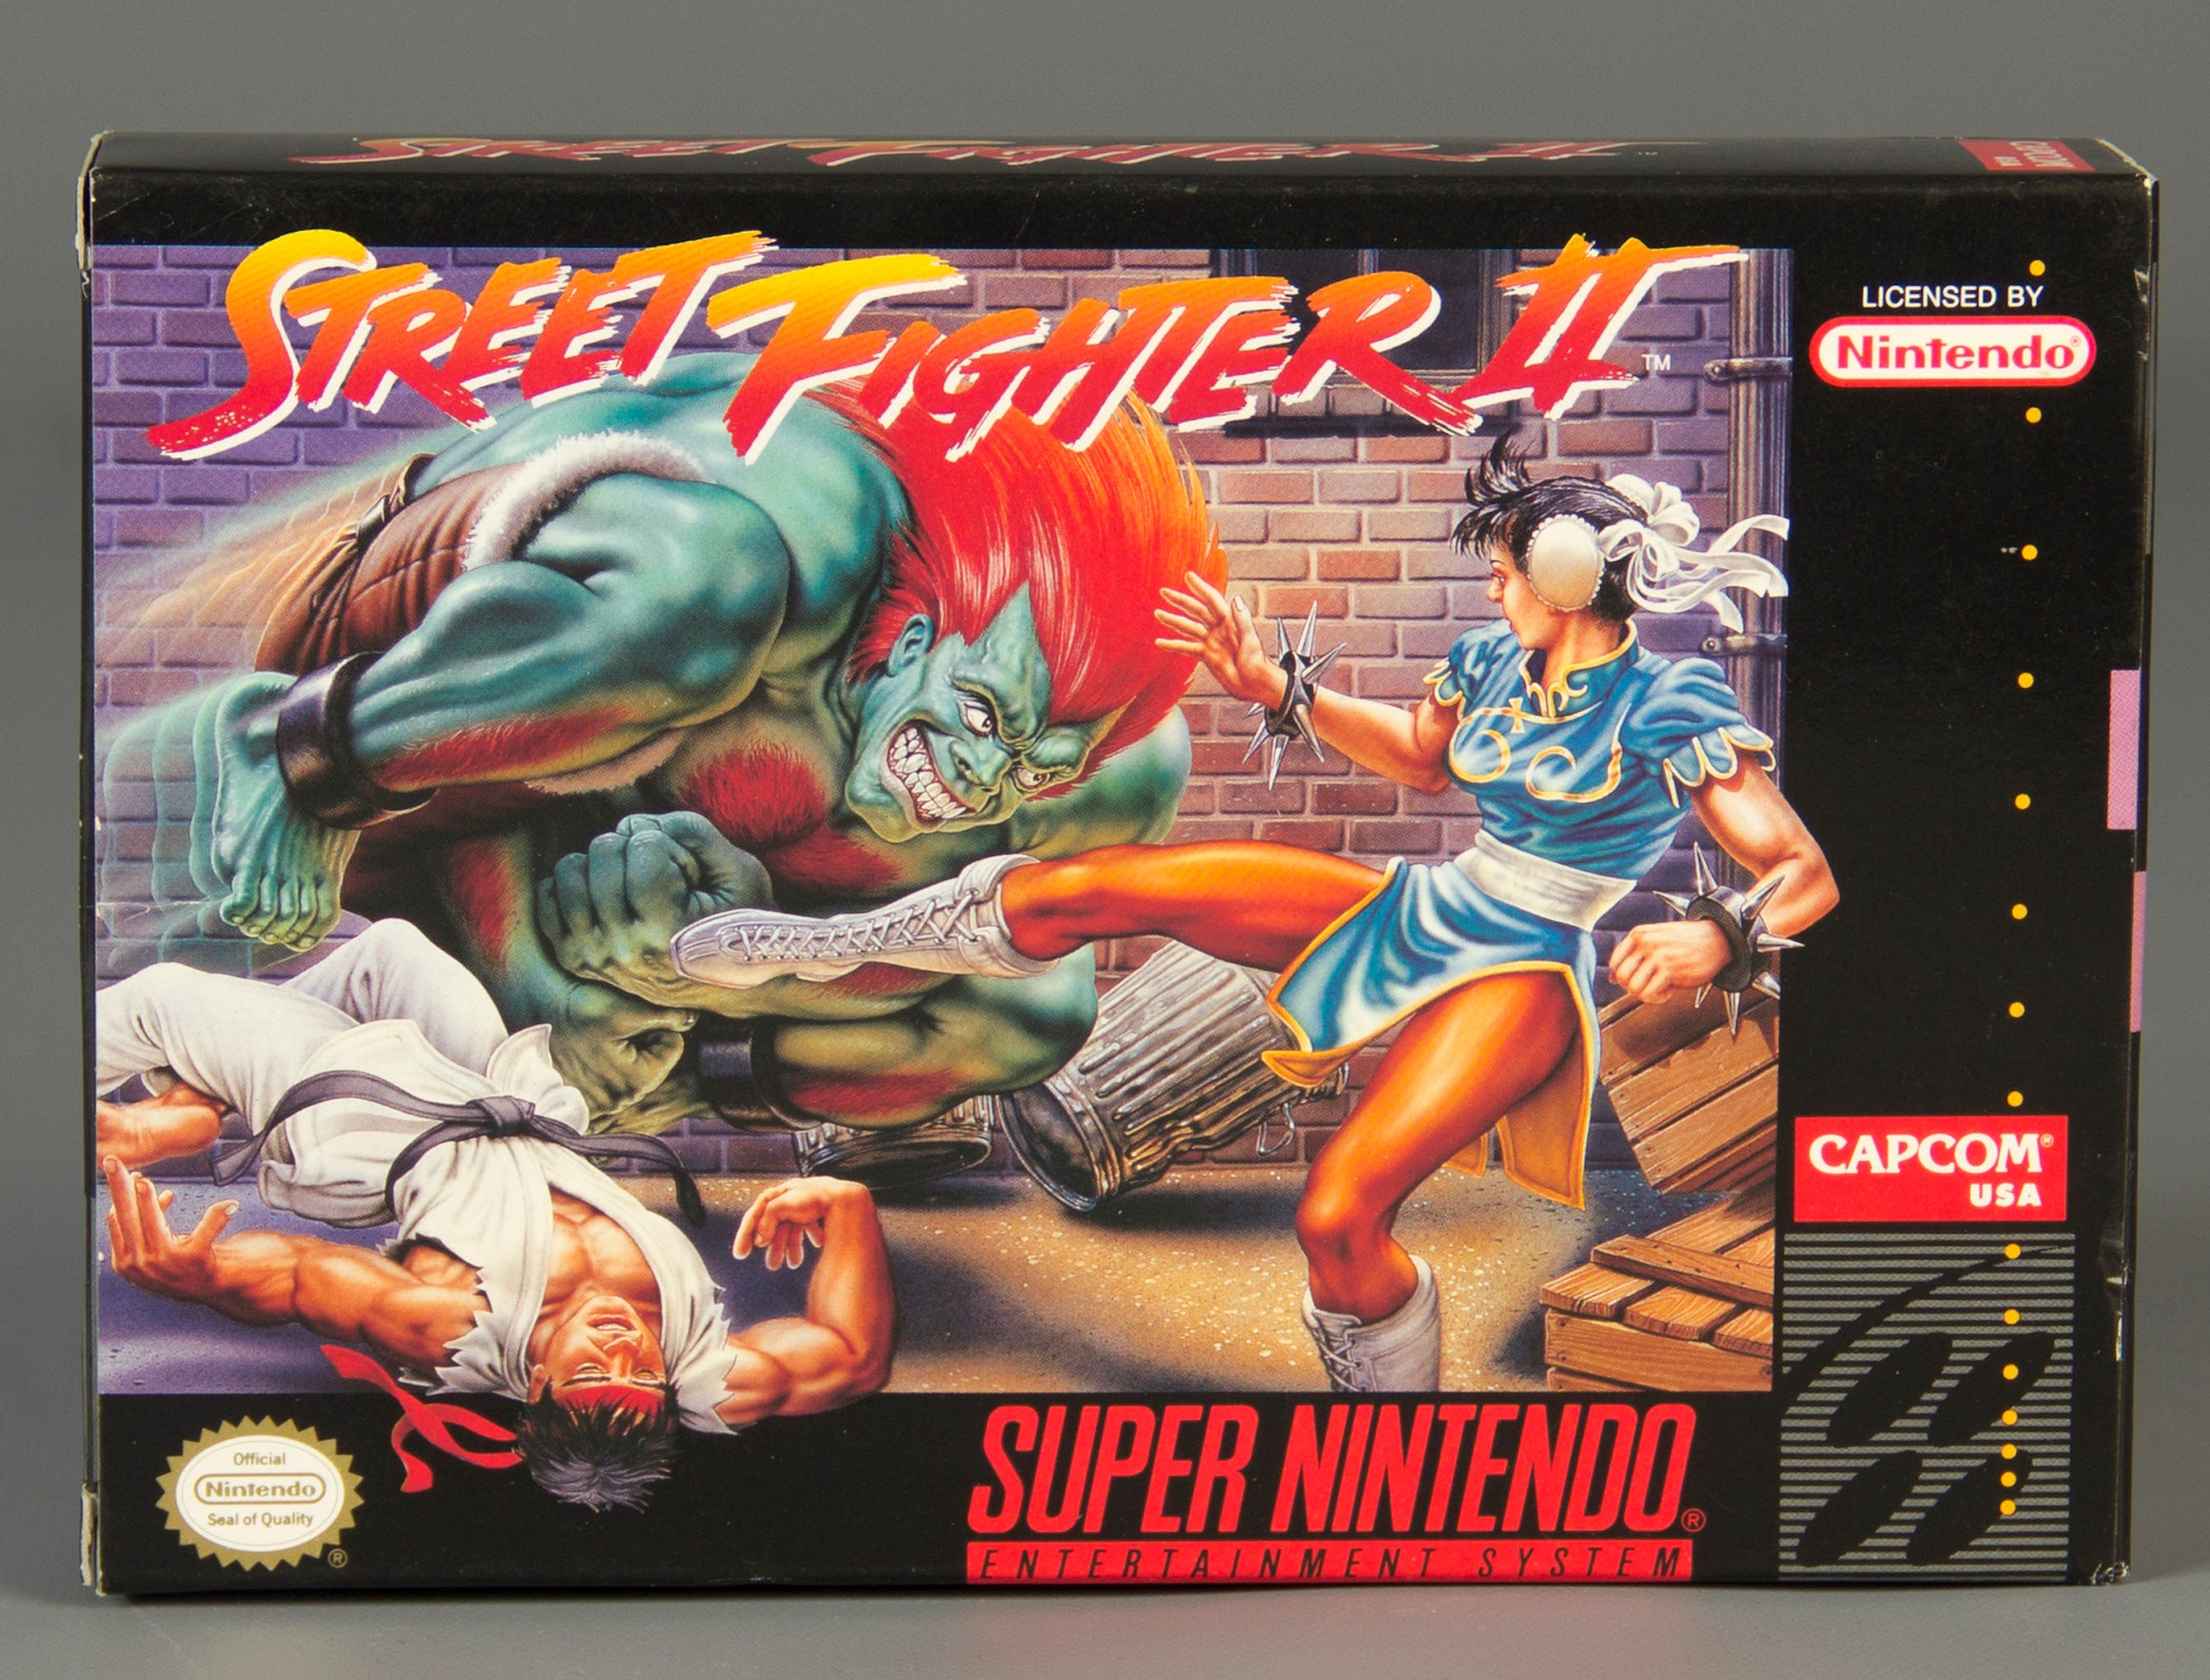 Street Fighter II was inducted into the World Video Game Hall of Fame at The Strong National Museum of Play in  Rochester, New York in 2017.